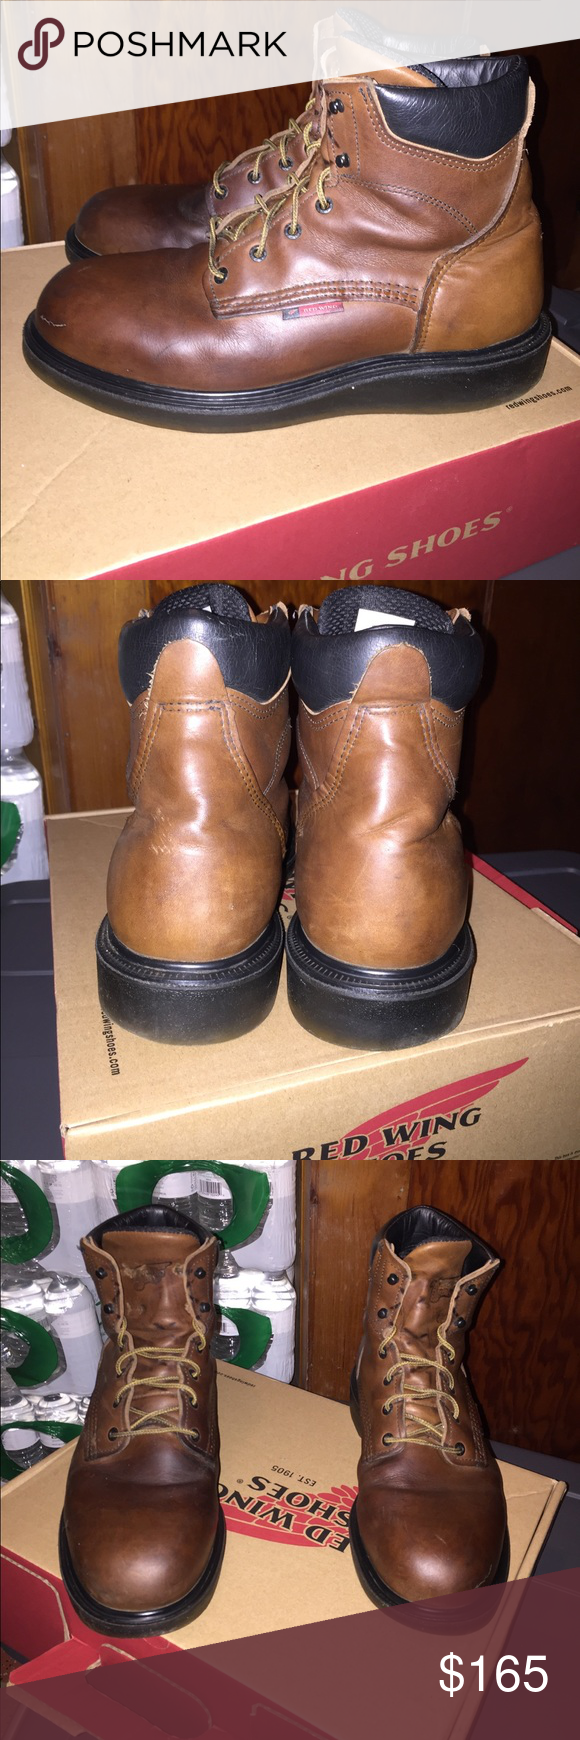 Men S Redwing Boots Red Wing Model 676 Size 10 5 D Width Worn Maybe 5 Times Red Wing Shoes Shoes Boots Mens Redwing Boots Red Wing Boots Boots